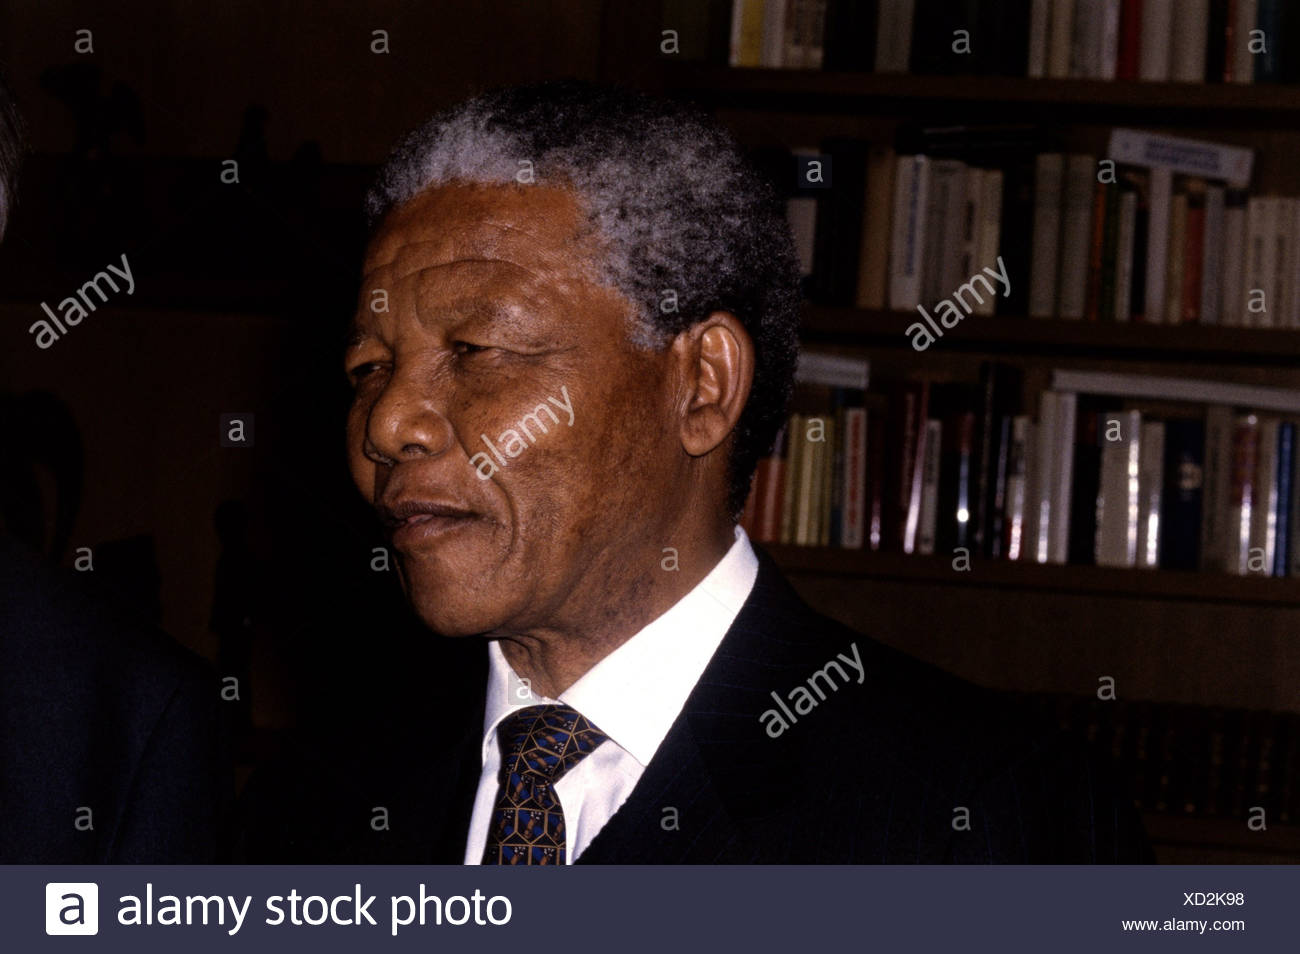 Mandela, Nelson, 18.7.1918 - 5.12.2013, South African politician (ANC), portrait, early 1990s, Additional-Rights-Clearances-NA - Stock Image